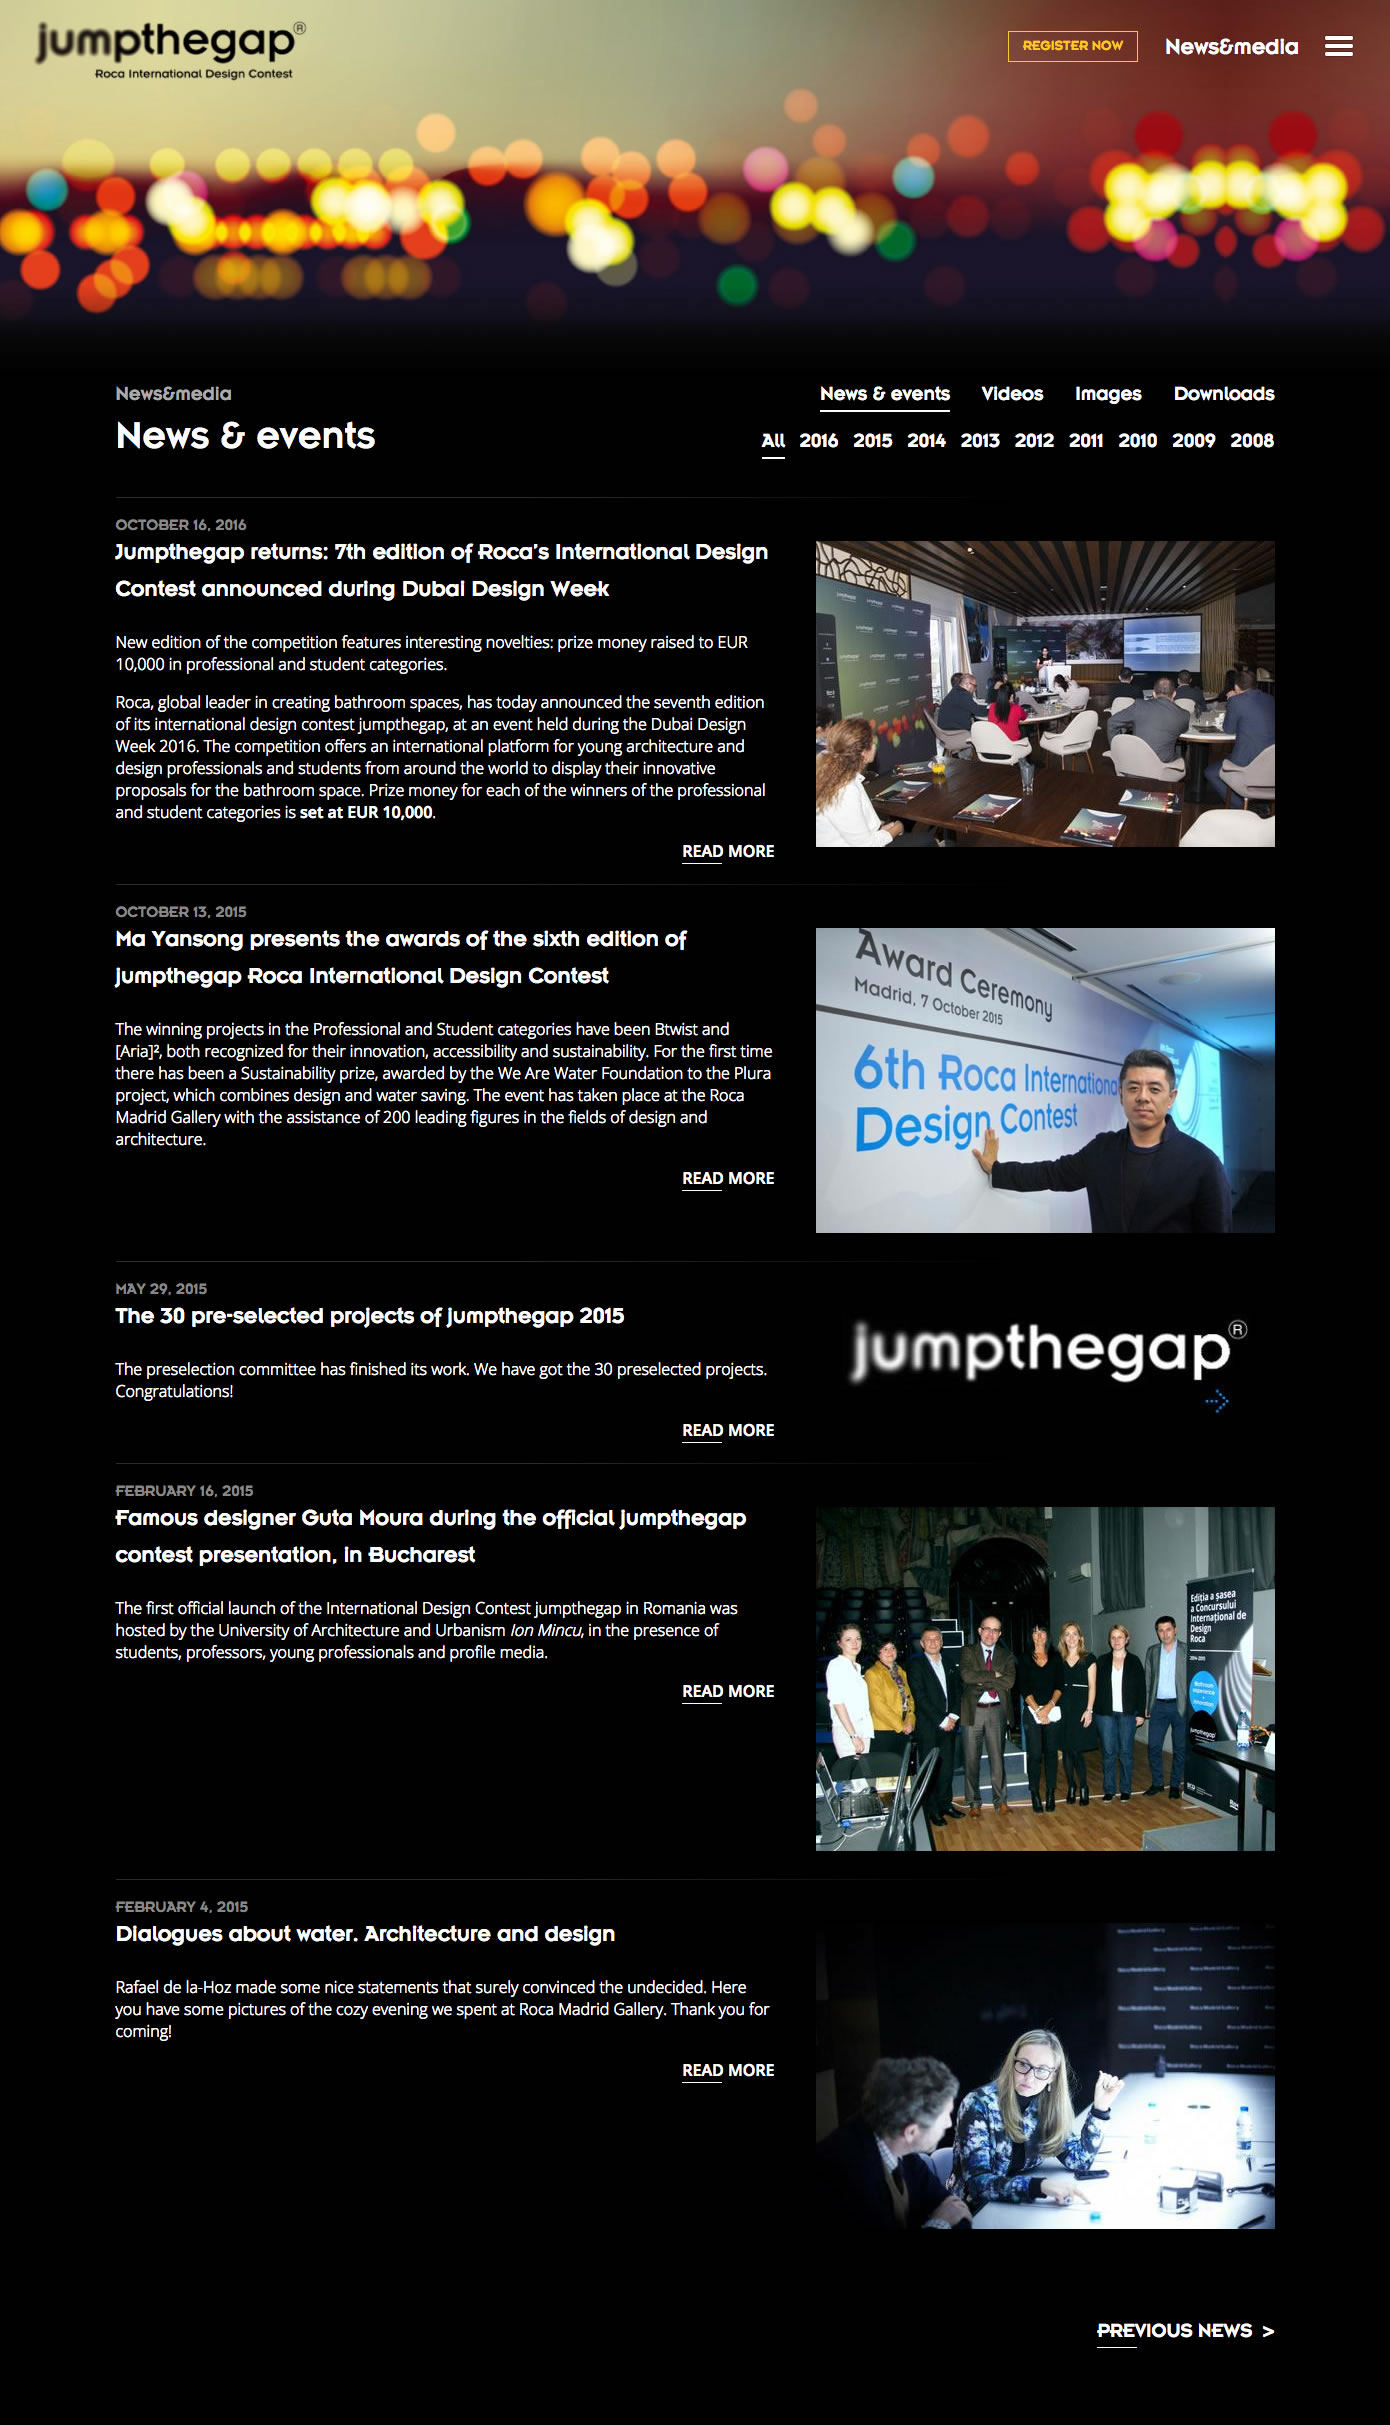 jumpthegap - News and events